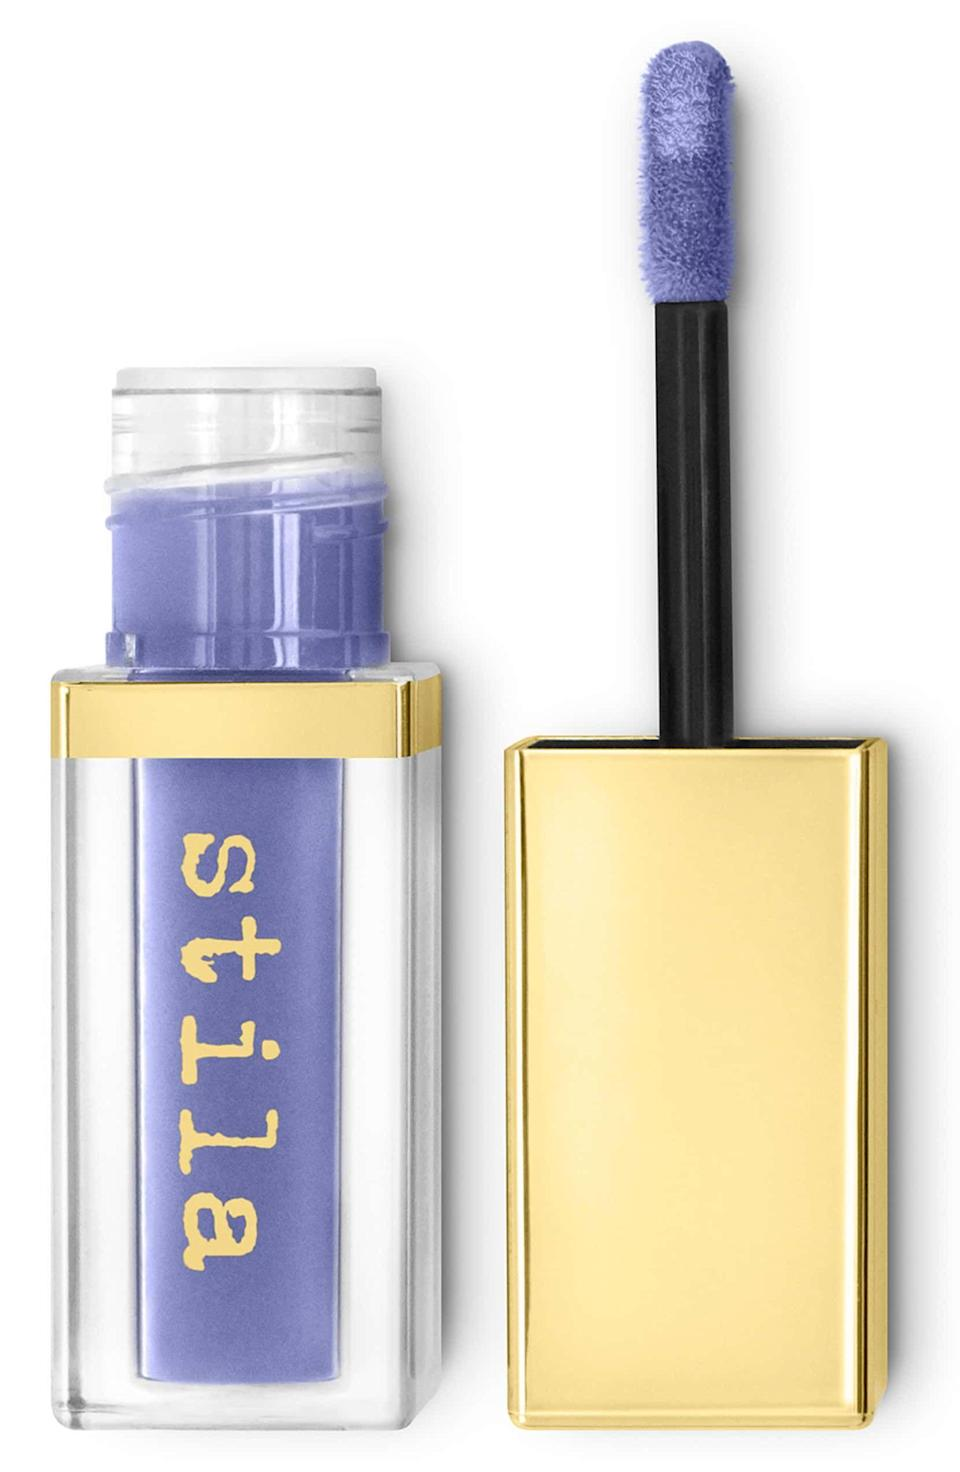 """<p><strong>STILA</strong></p><p>nordstrom.com</p><p><strong>$24.00</strong></p><p><a href=""""https://go.redirectingat.com?id=74968X1596630&url=https%3A%2F%2Fshop.nordstrom.com%2Fs%2Fstila-suede-shade-eyeshadow%2F5373284&sref=https%3A%2F%2Fwww.cosmopolitan.com%2Fstyle-beauty%2Ffashion%2Fg13602855%2Fbest-gift-ideas-for-women%2F"""" rel=""""nofollow noopener"""" target=""""_blank"""" data-ylk=""""slk:Shop Now"""" class=""""link rapid-noclick-resp"""">Shop Now</a></p><p>Their eyelids will look killer with this bright periwinkle shade, but this easy-to-use <a href=""""https://www.cosmopolitan.com/style-beauty/beauty/g26986206/best-liquid-eyeshadow/"""" rel=""""nofollow noopener"""" target=""""_blank"""" data-ylk=""""slk:cream eyeshadow"""" class=""""link rapid-noclick-resp"""">cream eyeshadow</a> is also available in seven other hues. </p>"""